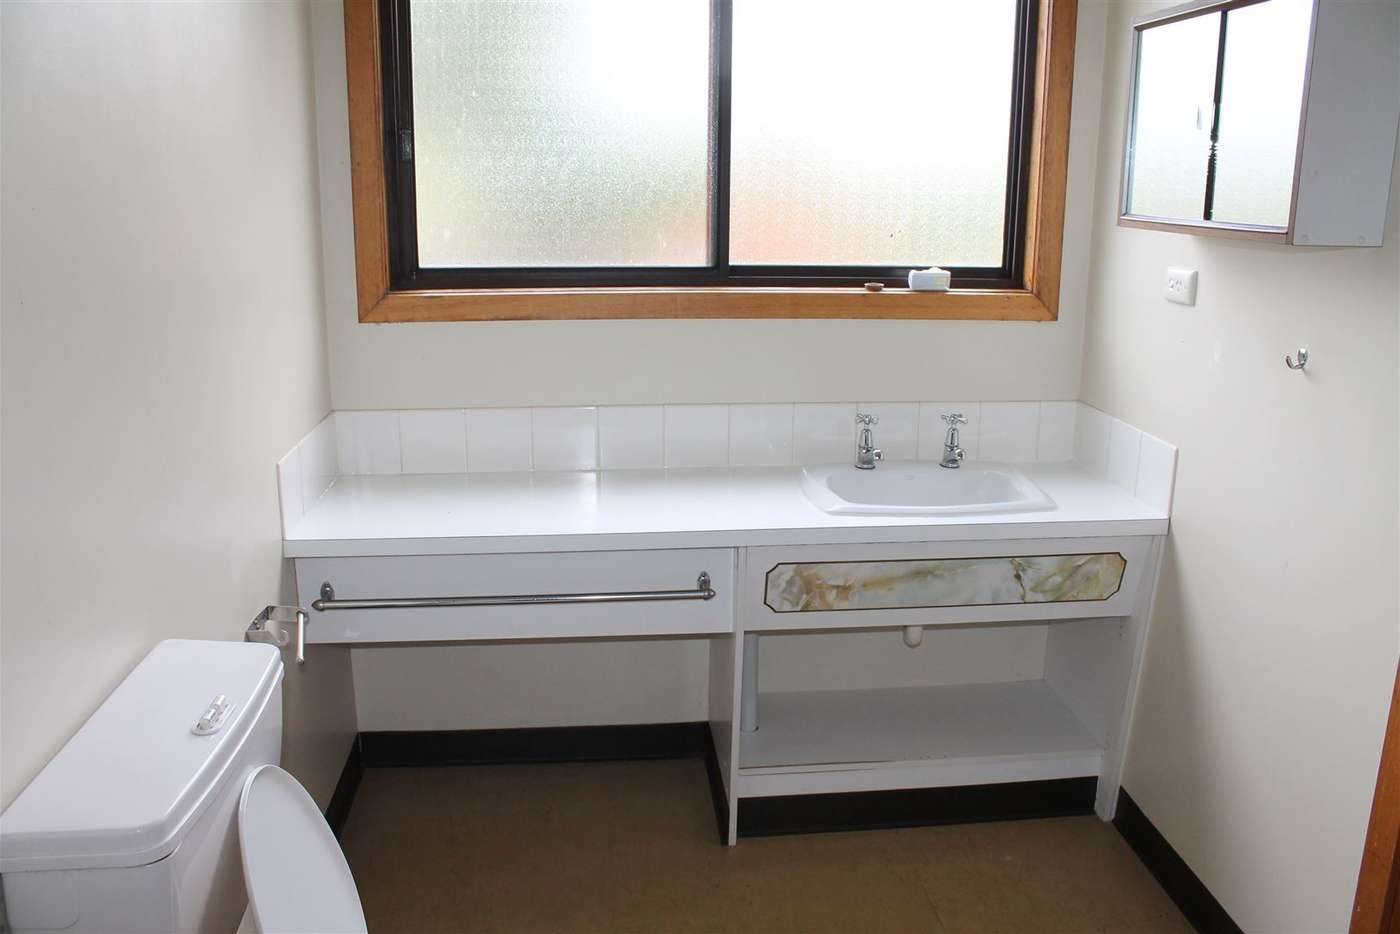 Sixth view of Homely unit listing, 2/85 Main St, Zeehan TAS 7469